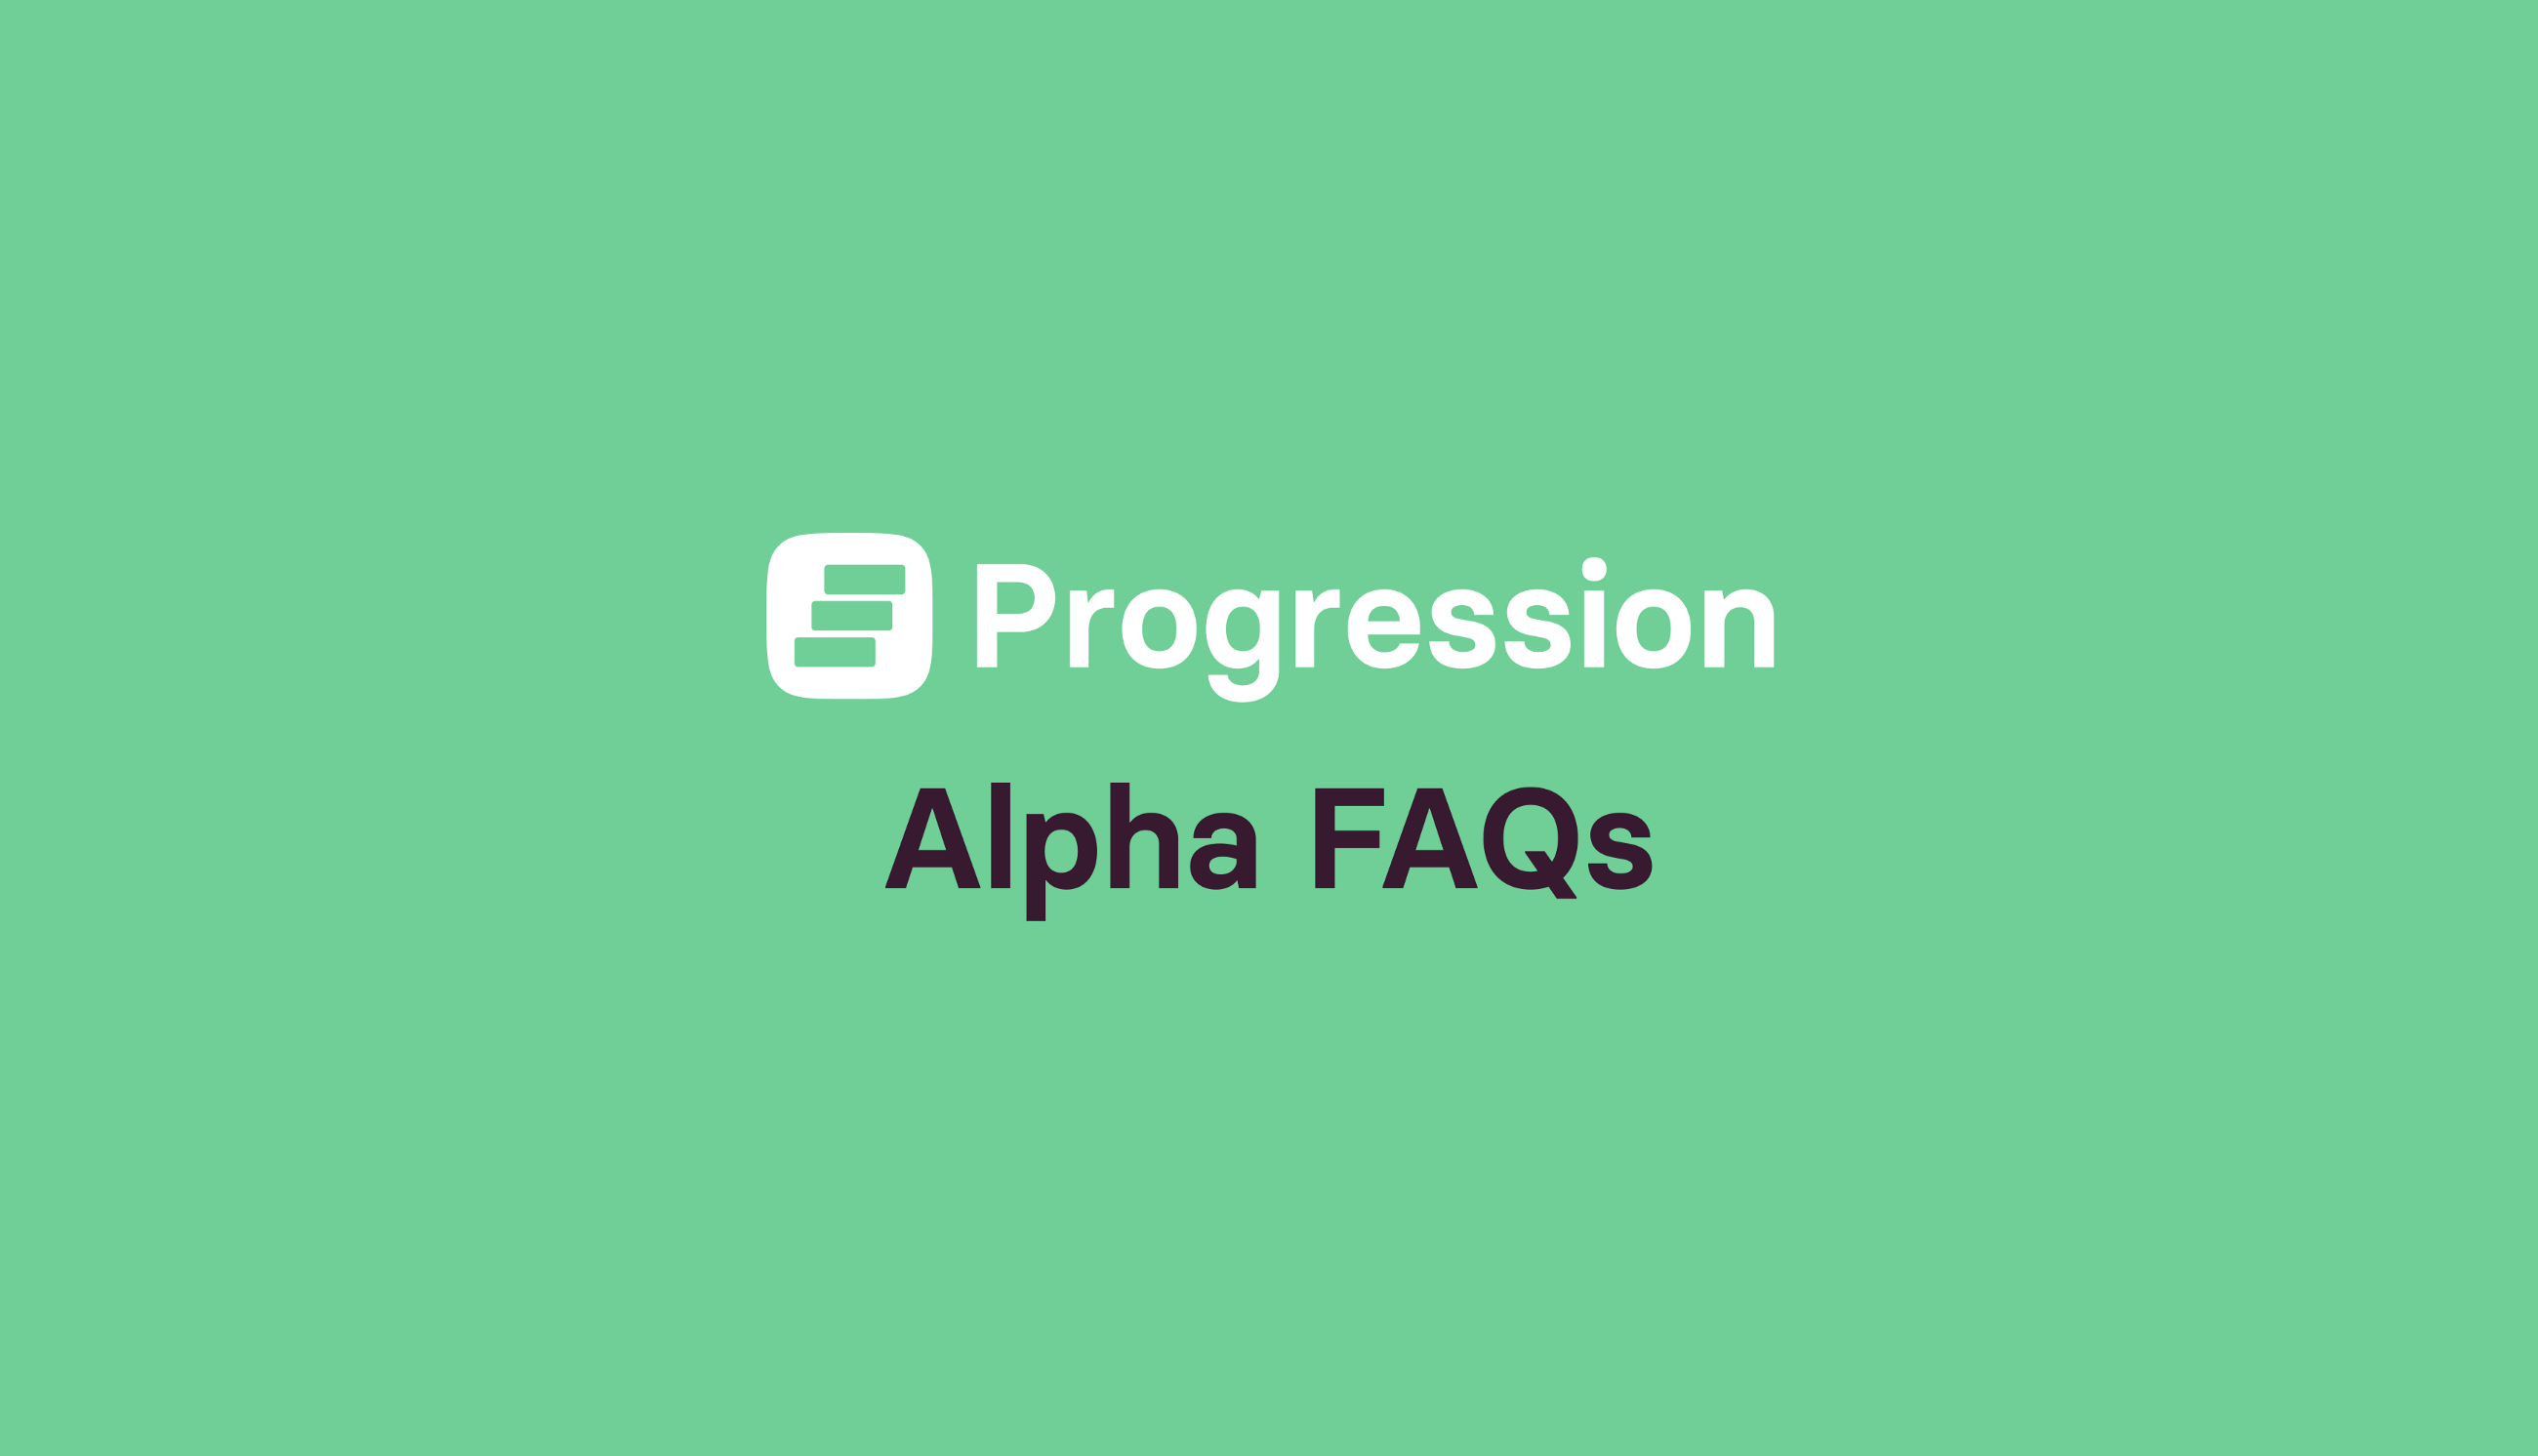 Progression Alpha